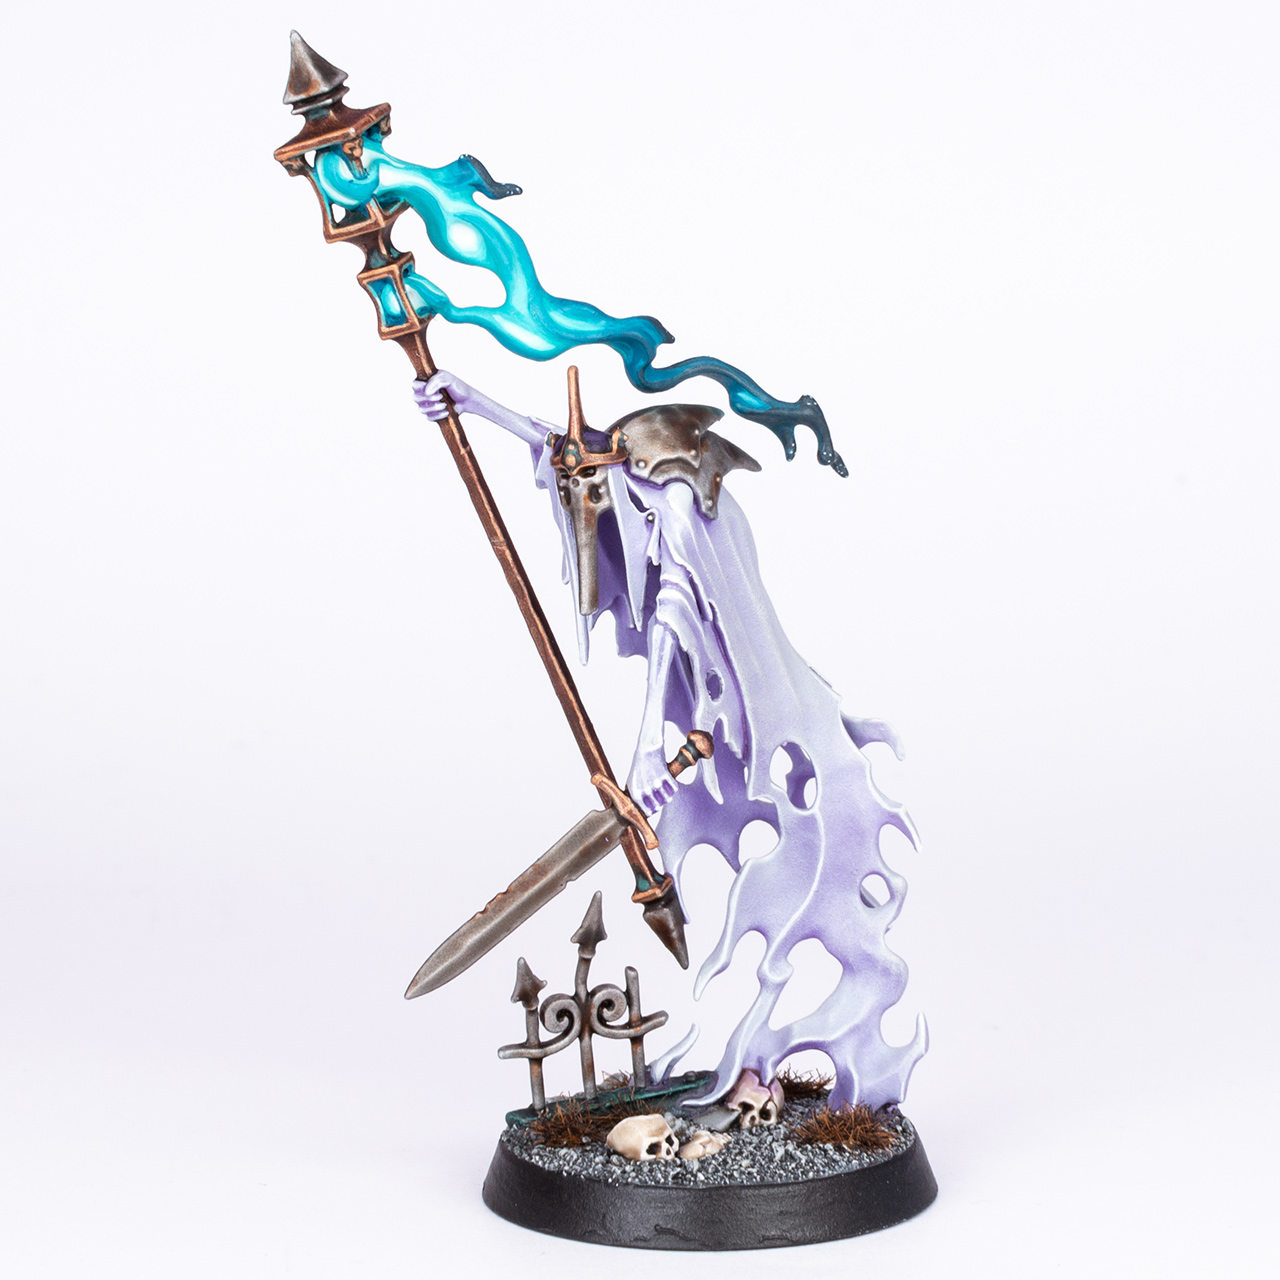 Nighthaunt Guardian of Souls painted by Stahly